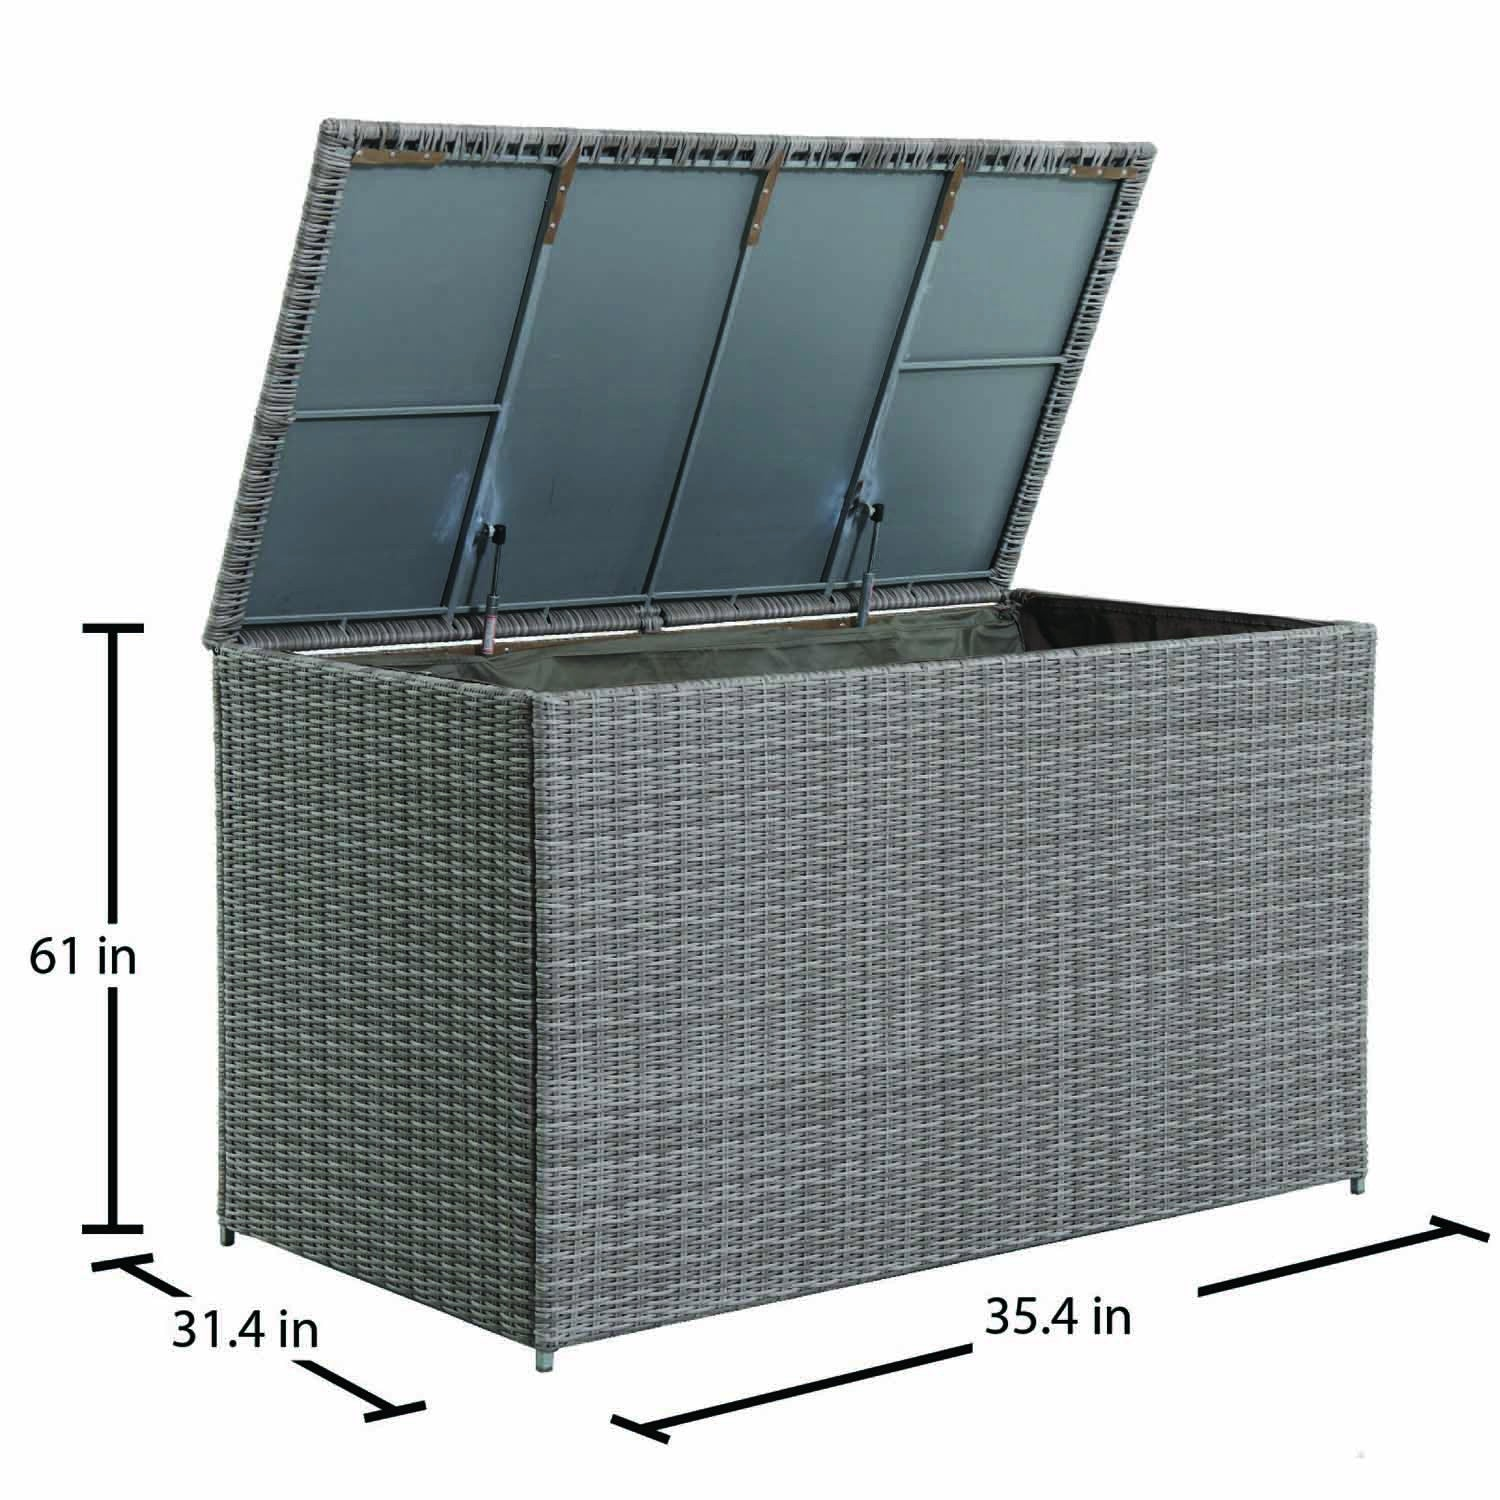 Royal Garden Webster Wicker Outdoor Extra Large Storage